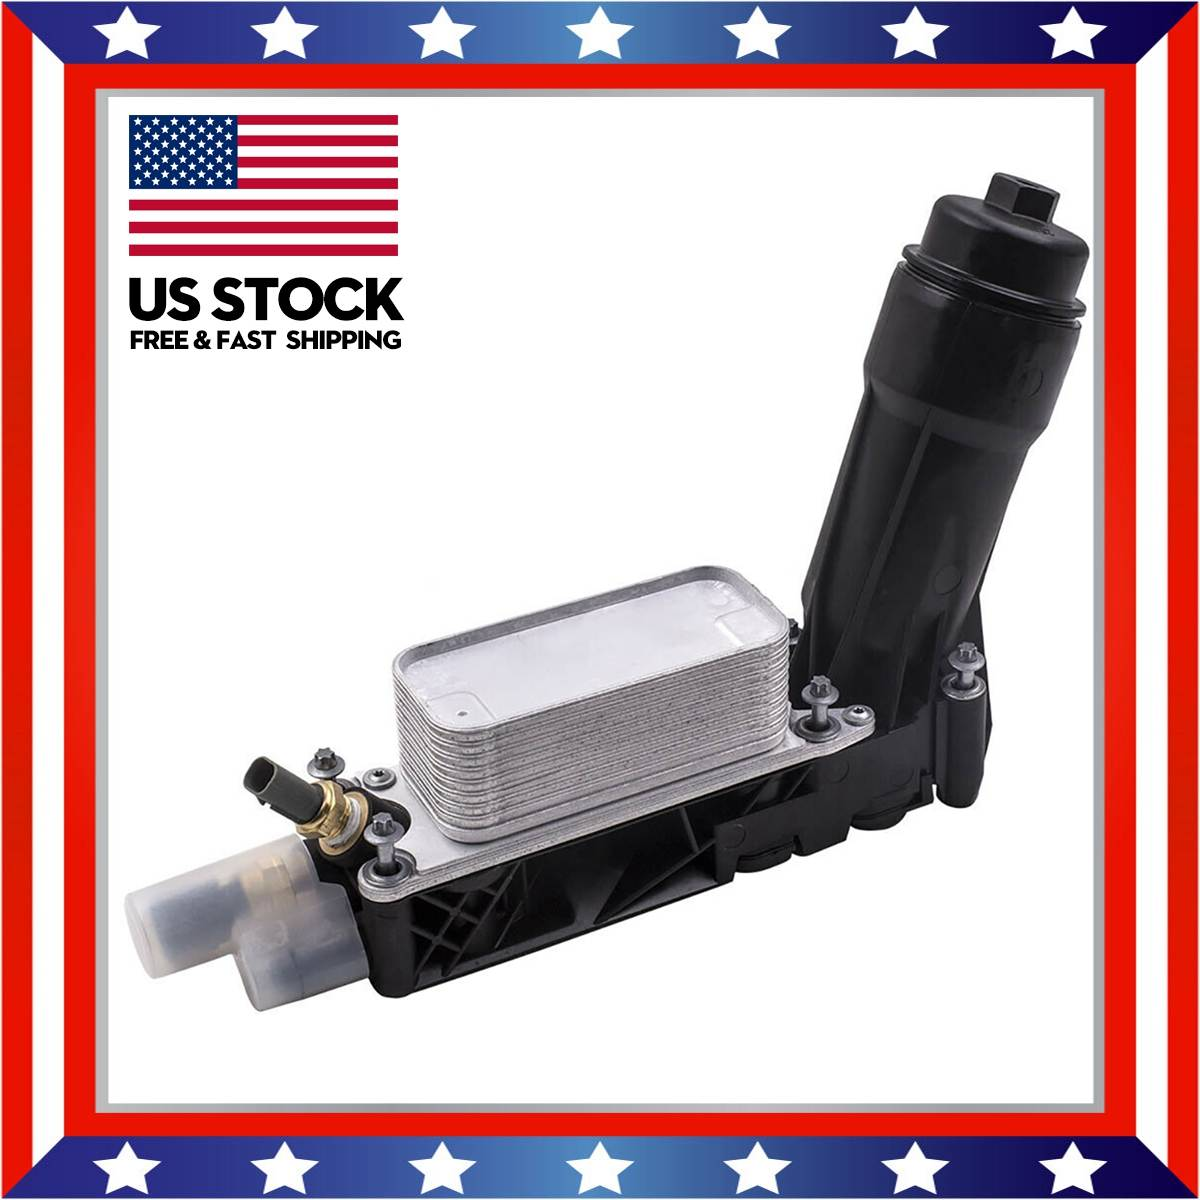 Car Oil Cooler Filter Housing W/ 2 Sensors For Jeepp Dodgee Chrysle Ram 3.6L V6 <font><b>5184294AE</b></font> 5184294AD 5184294AC Engine Oil Cooler image